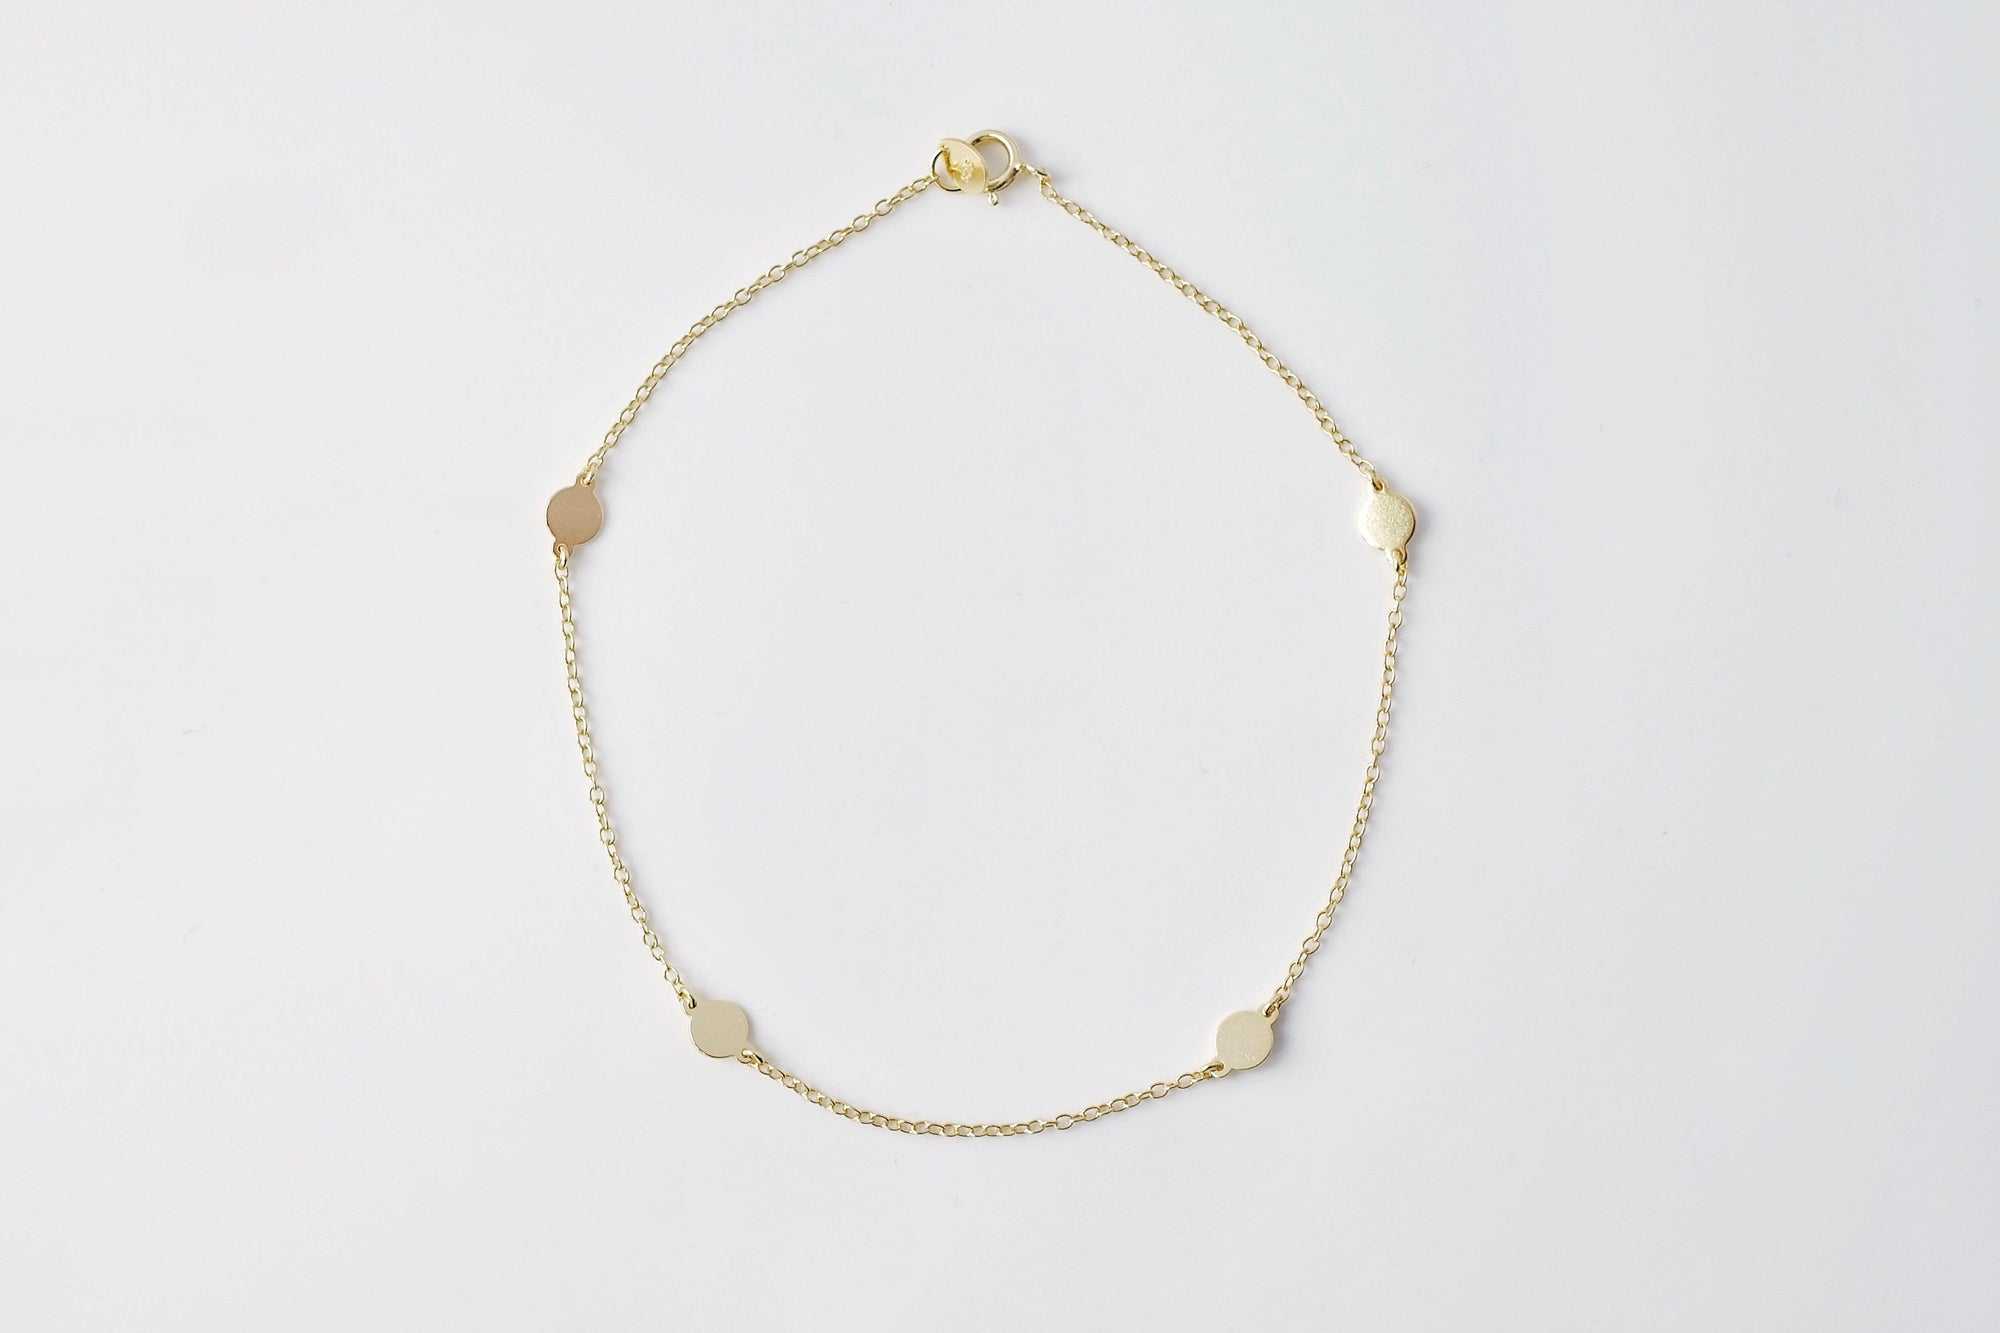 Gold Polka Dot Chain Anklet